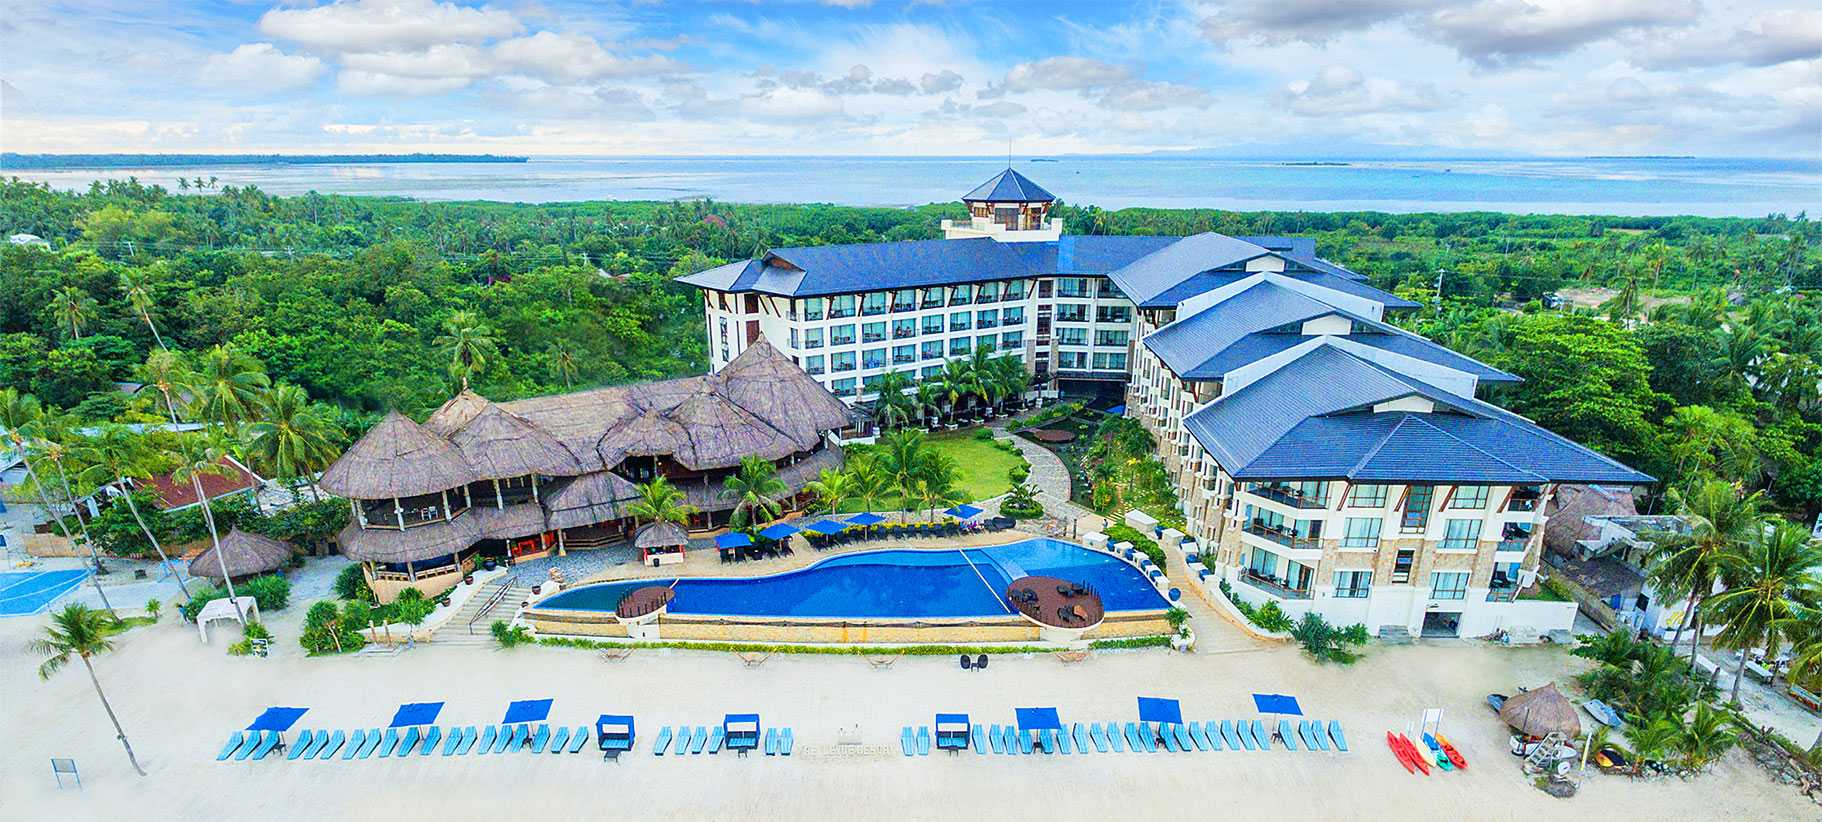 The Bellevue Resort Bohol